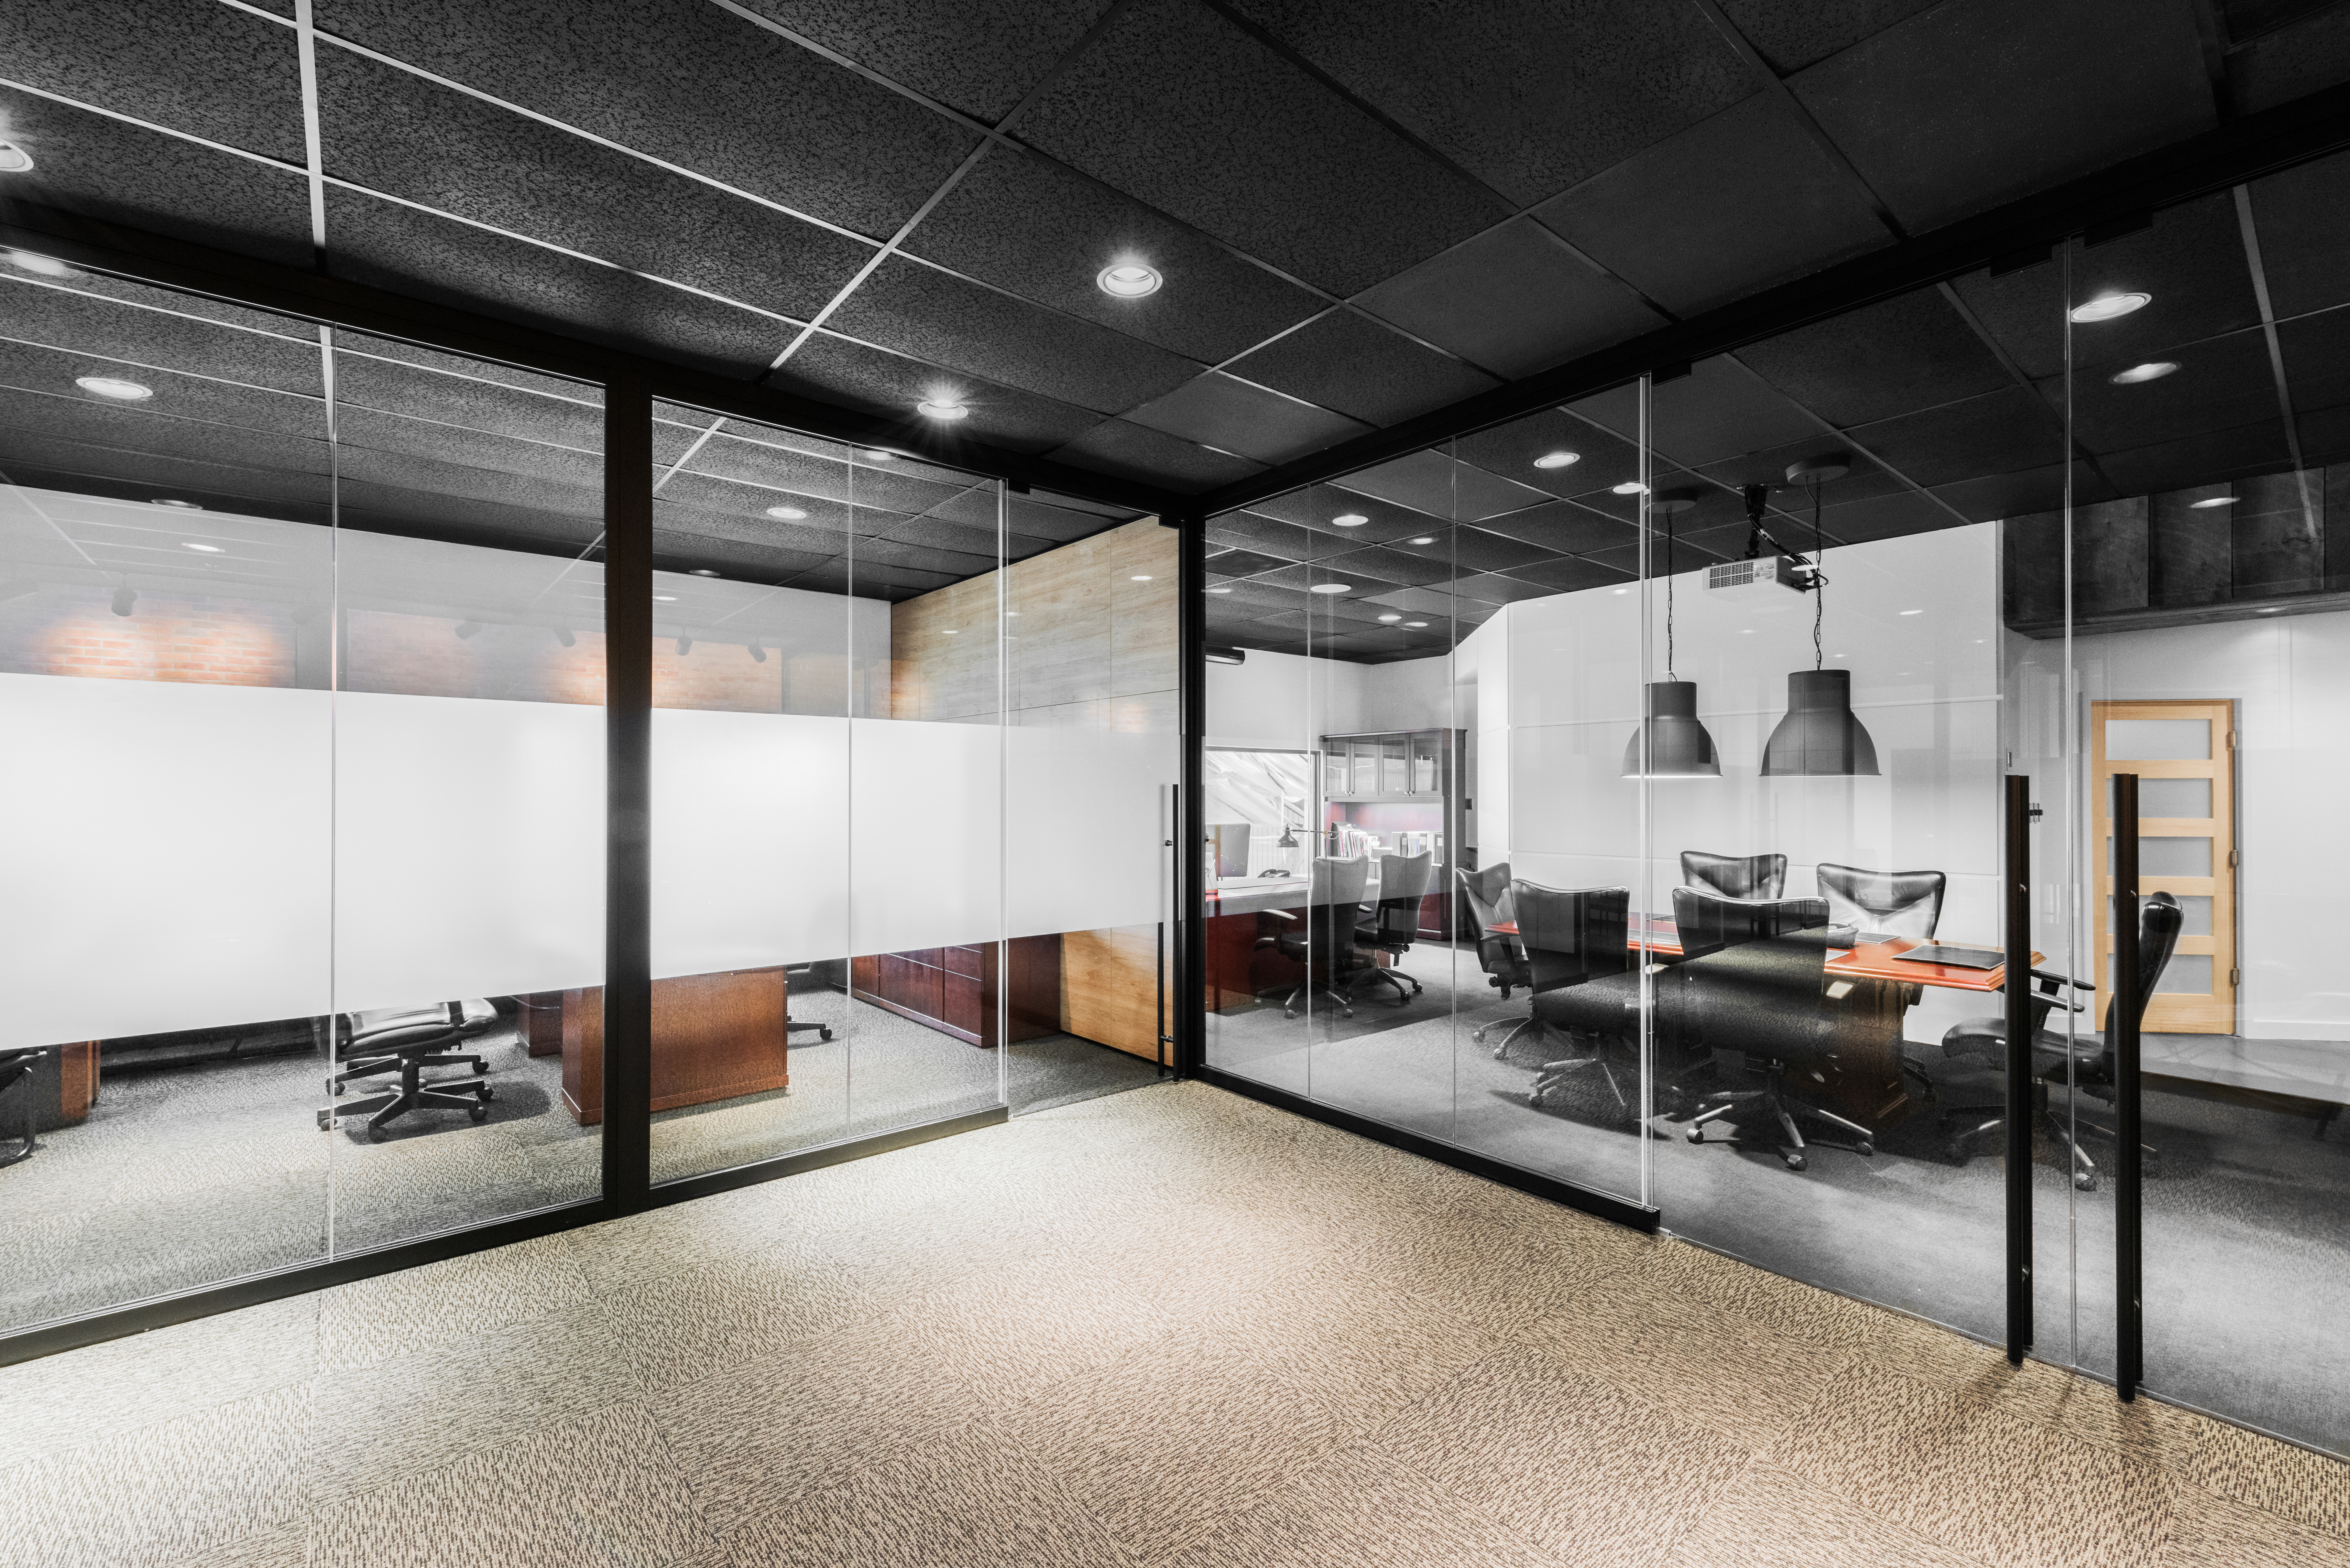 An office layout featuring sound-proof, demountable interior glass walls with black trim